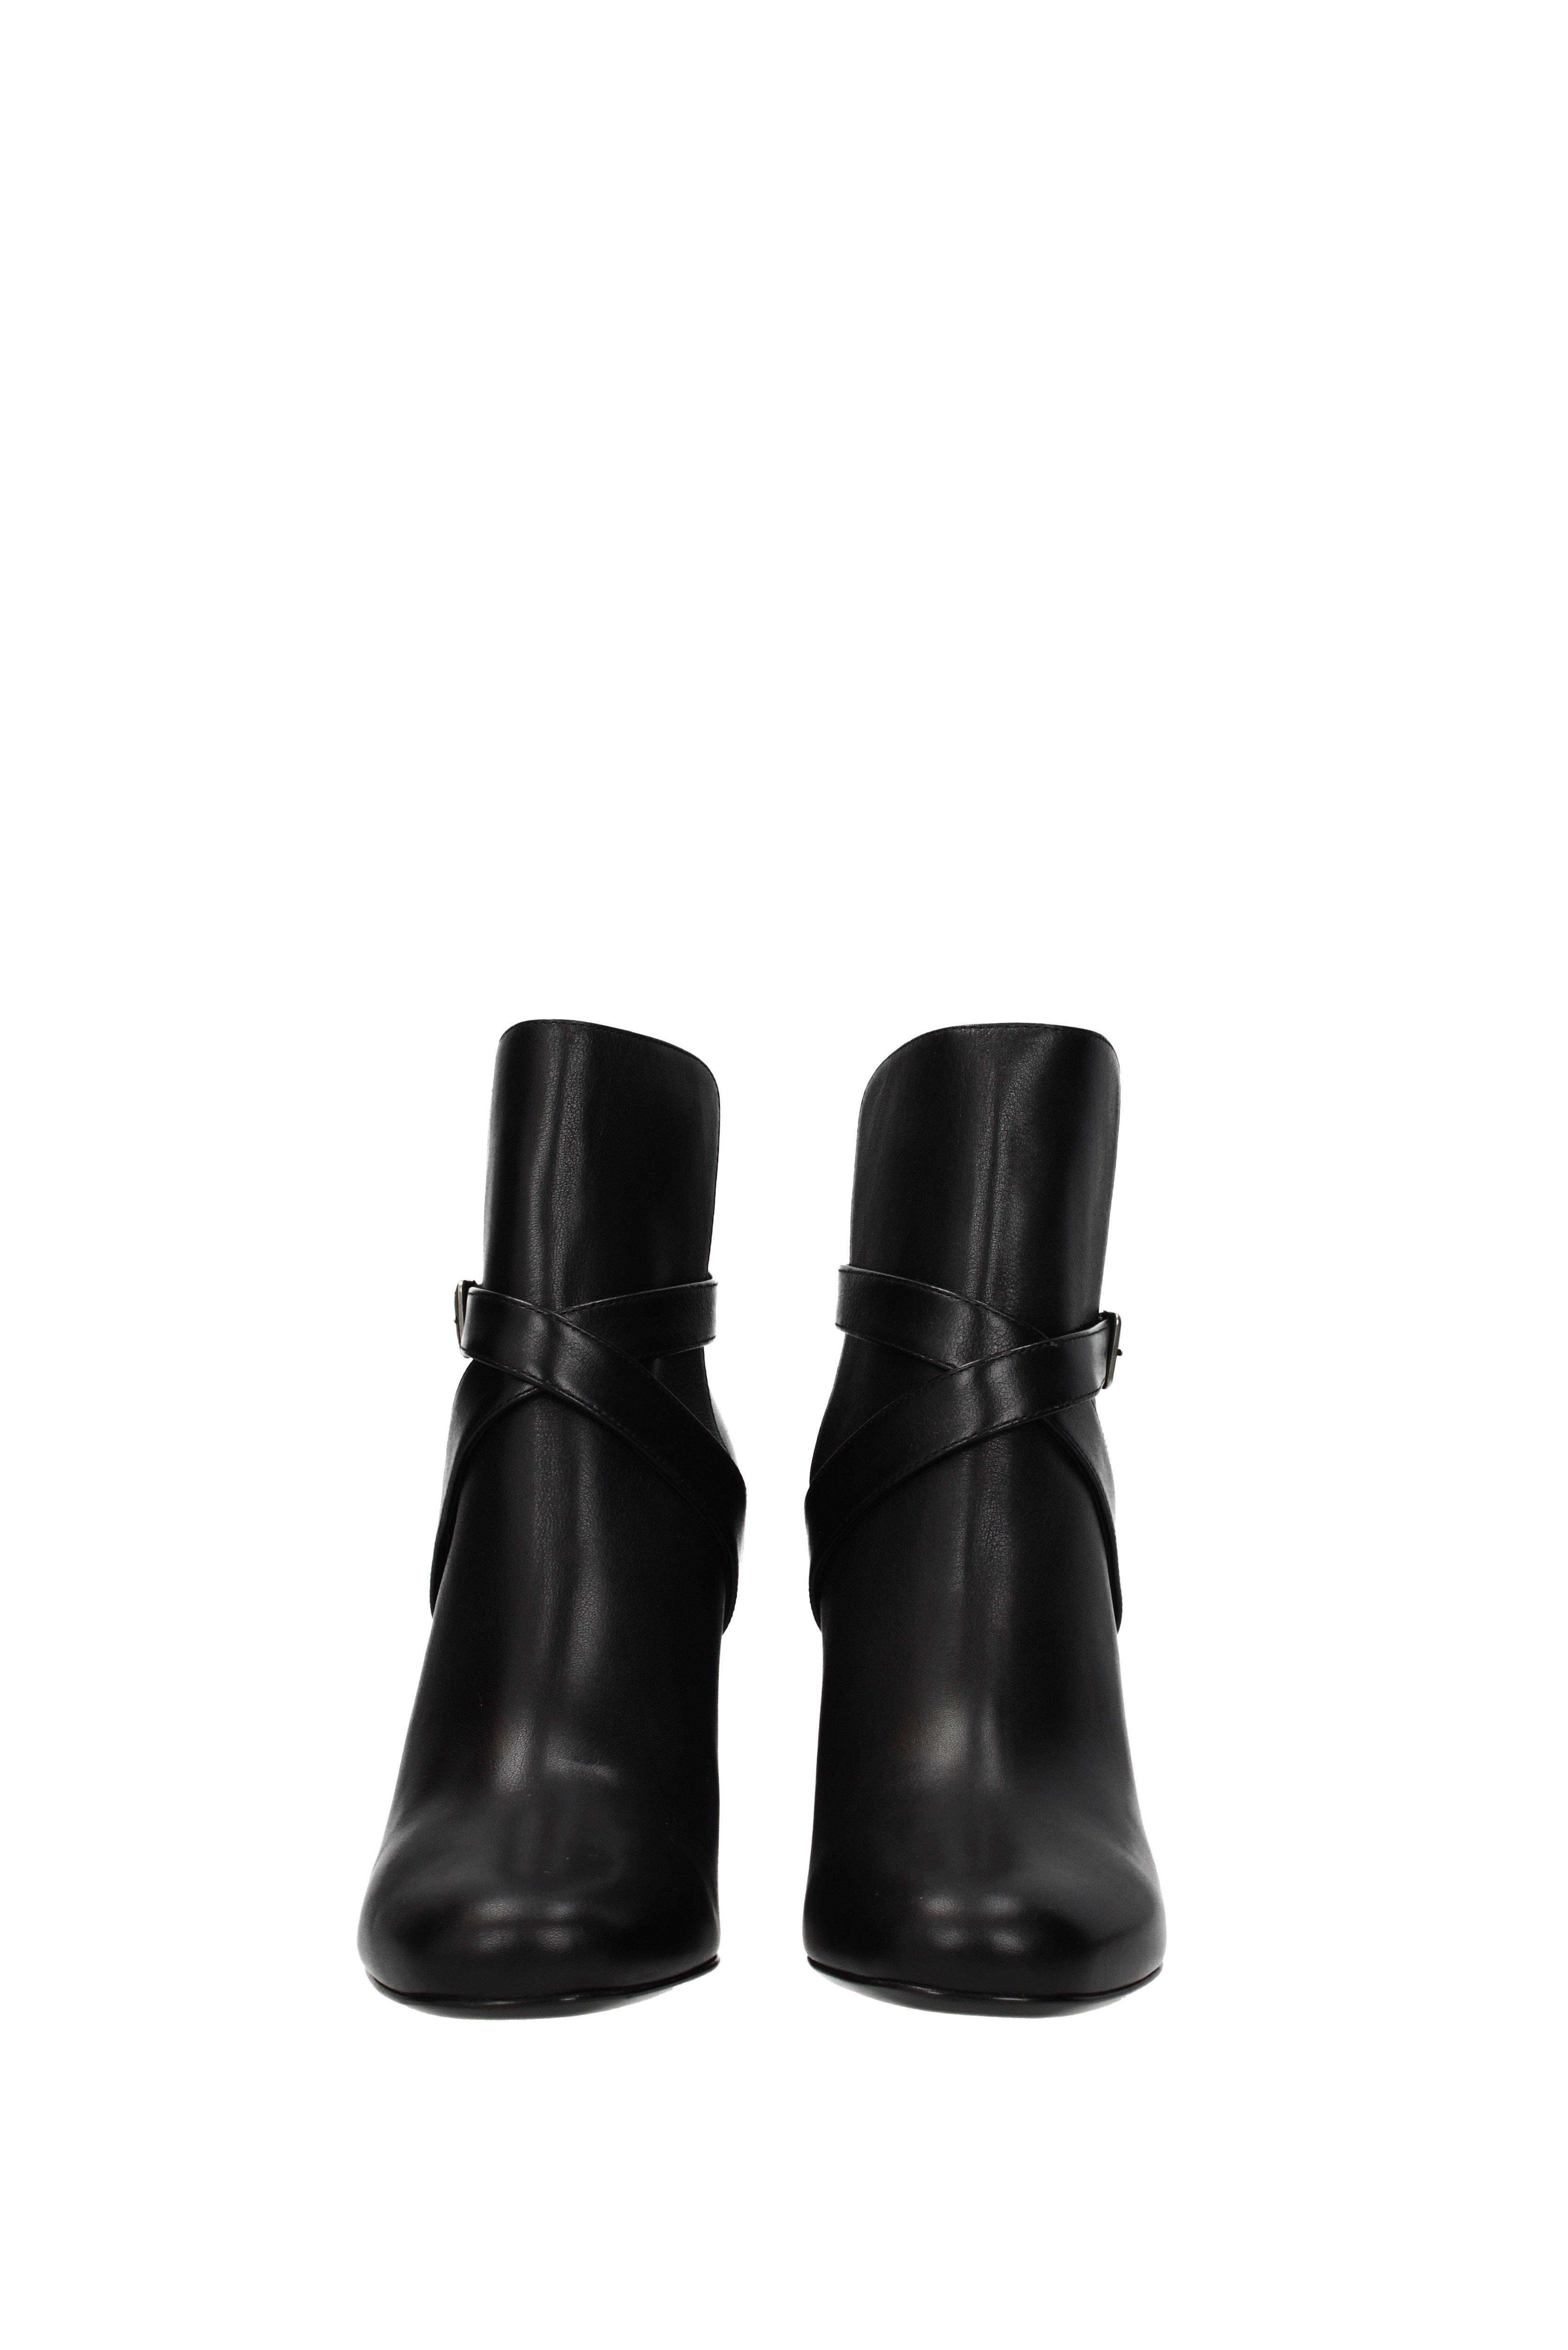 b81fe7ad2f6 Ankle Boots Women Black